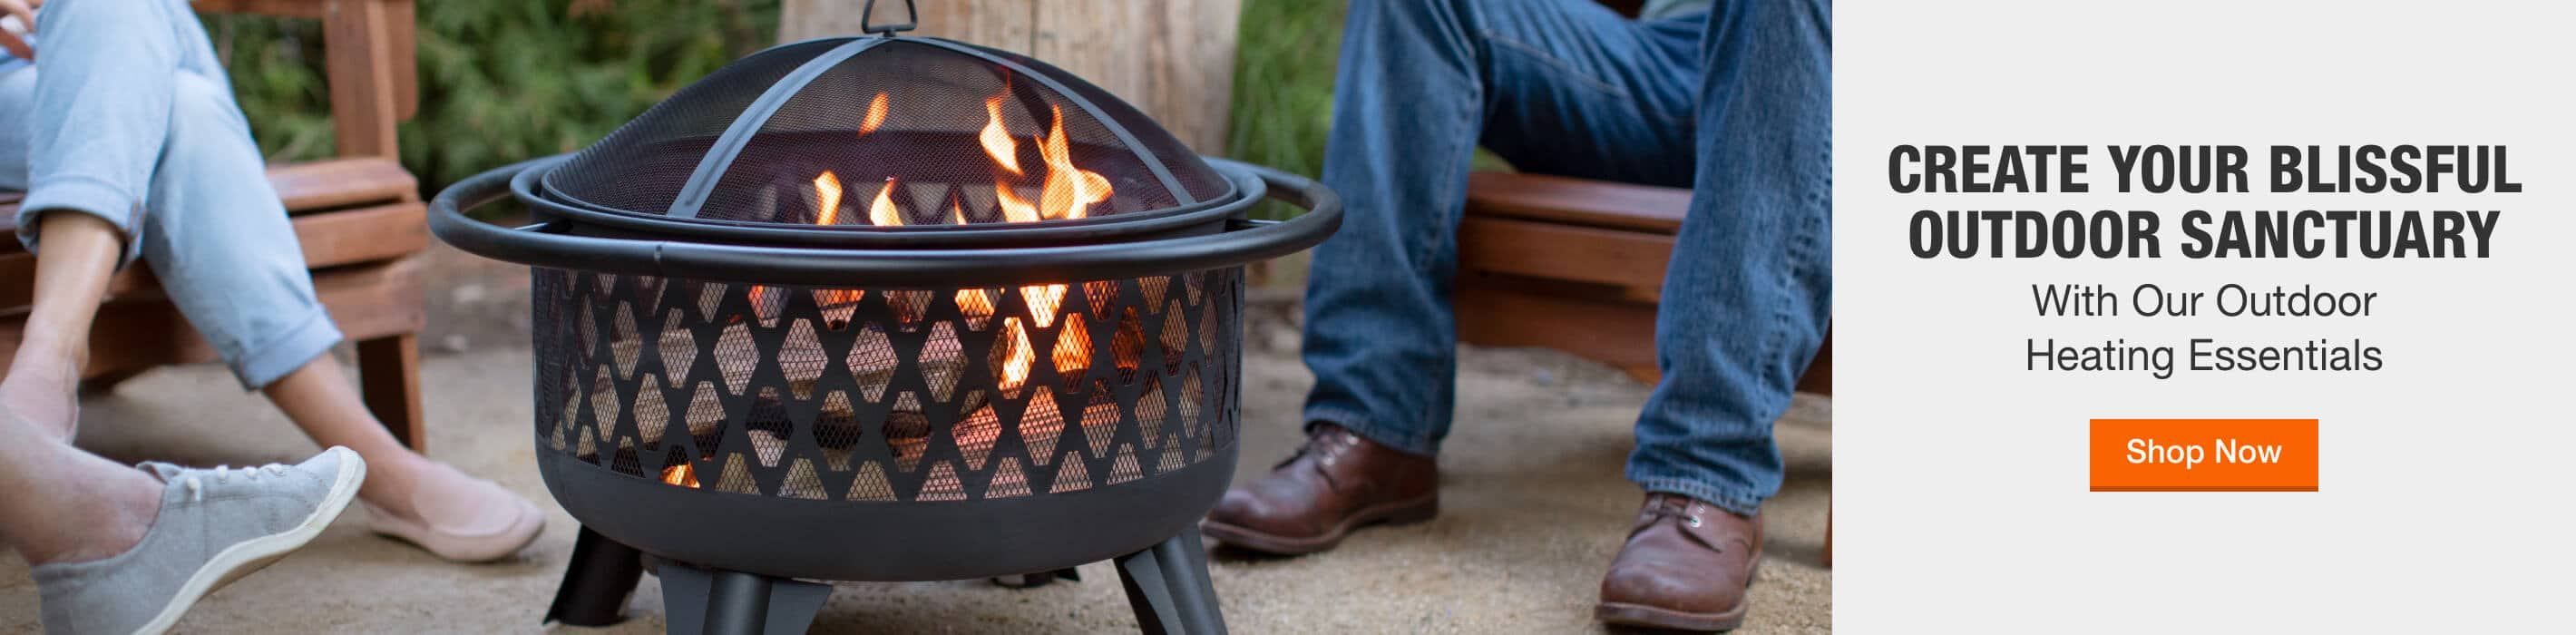 CREATE YOUR BLISSFUL OUTDOOR SANCTUARY With Our Outdoor Heating Essentials. Shop Now